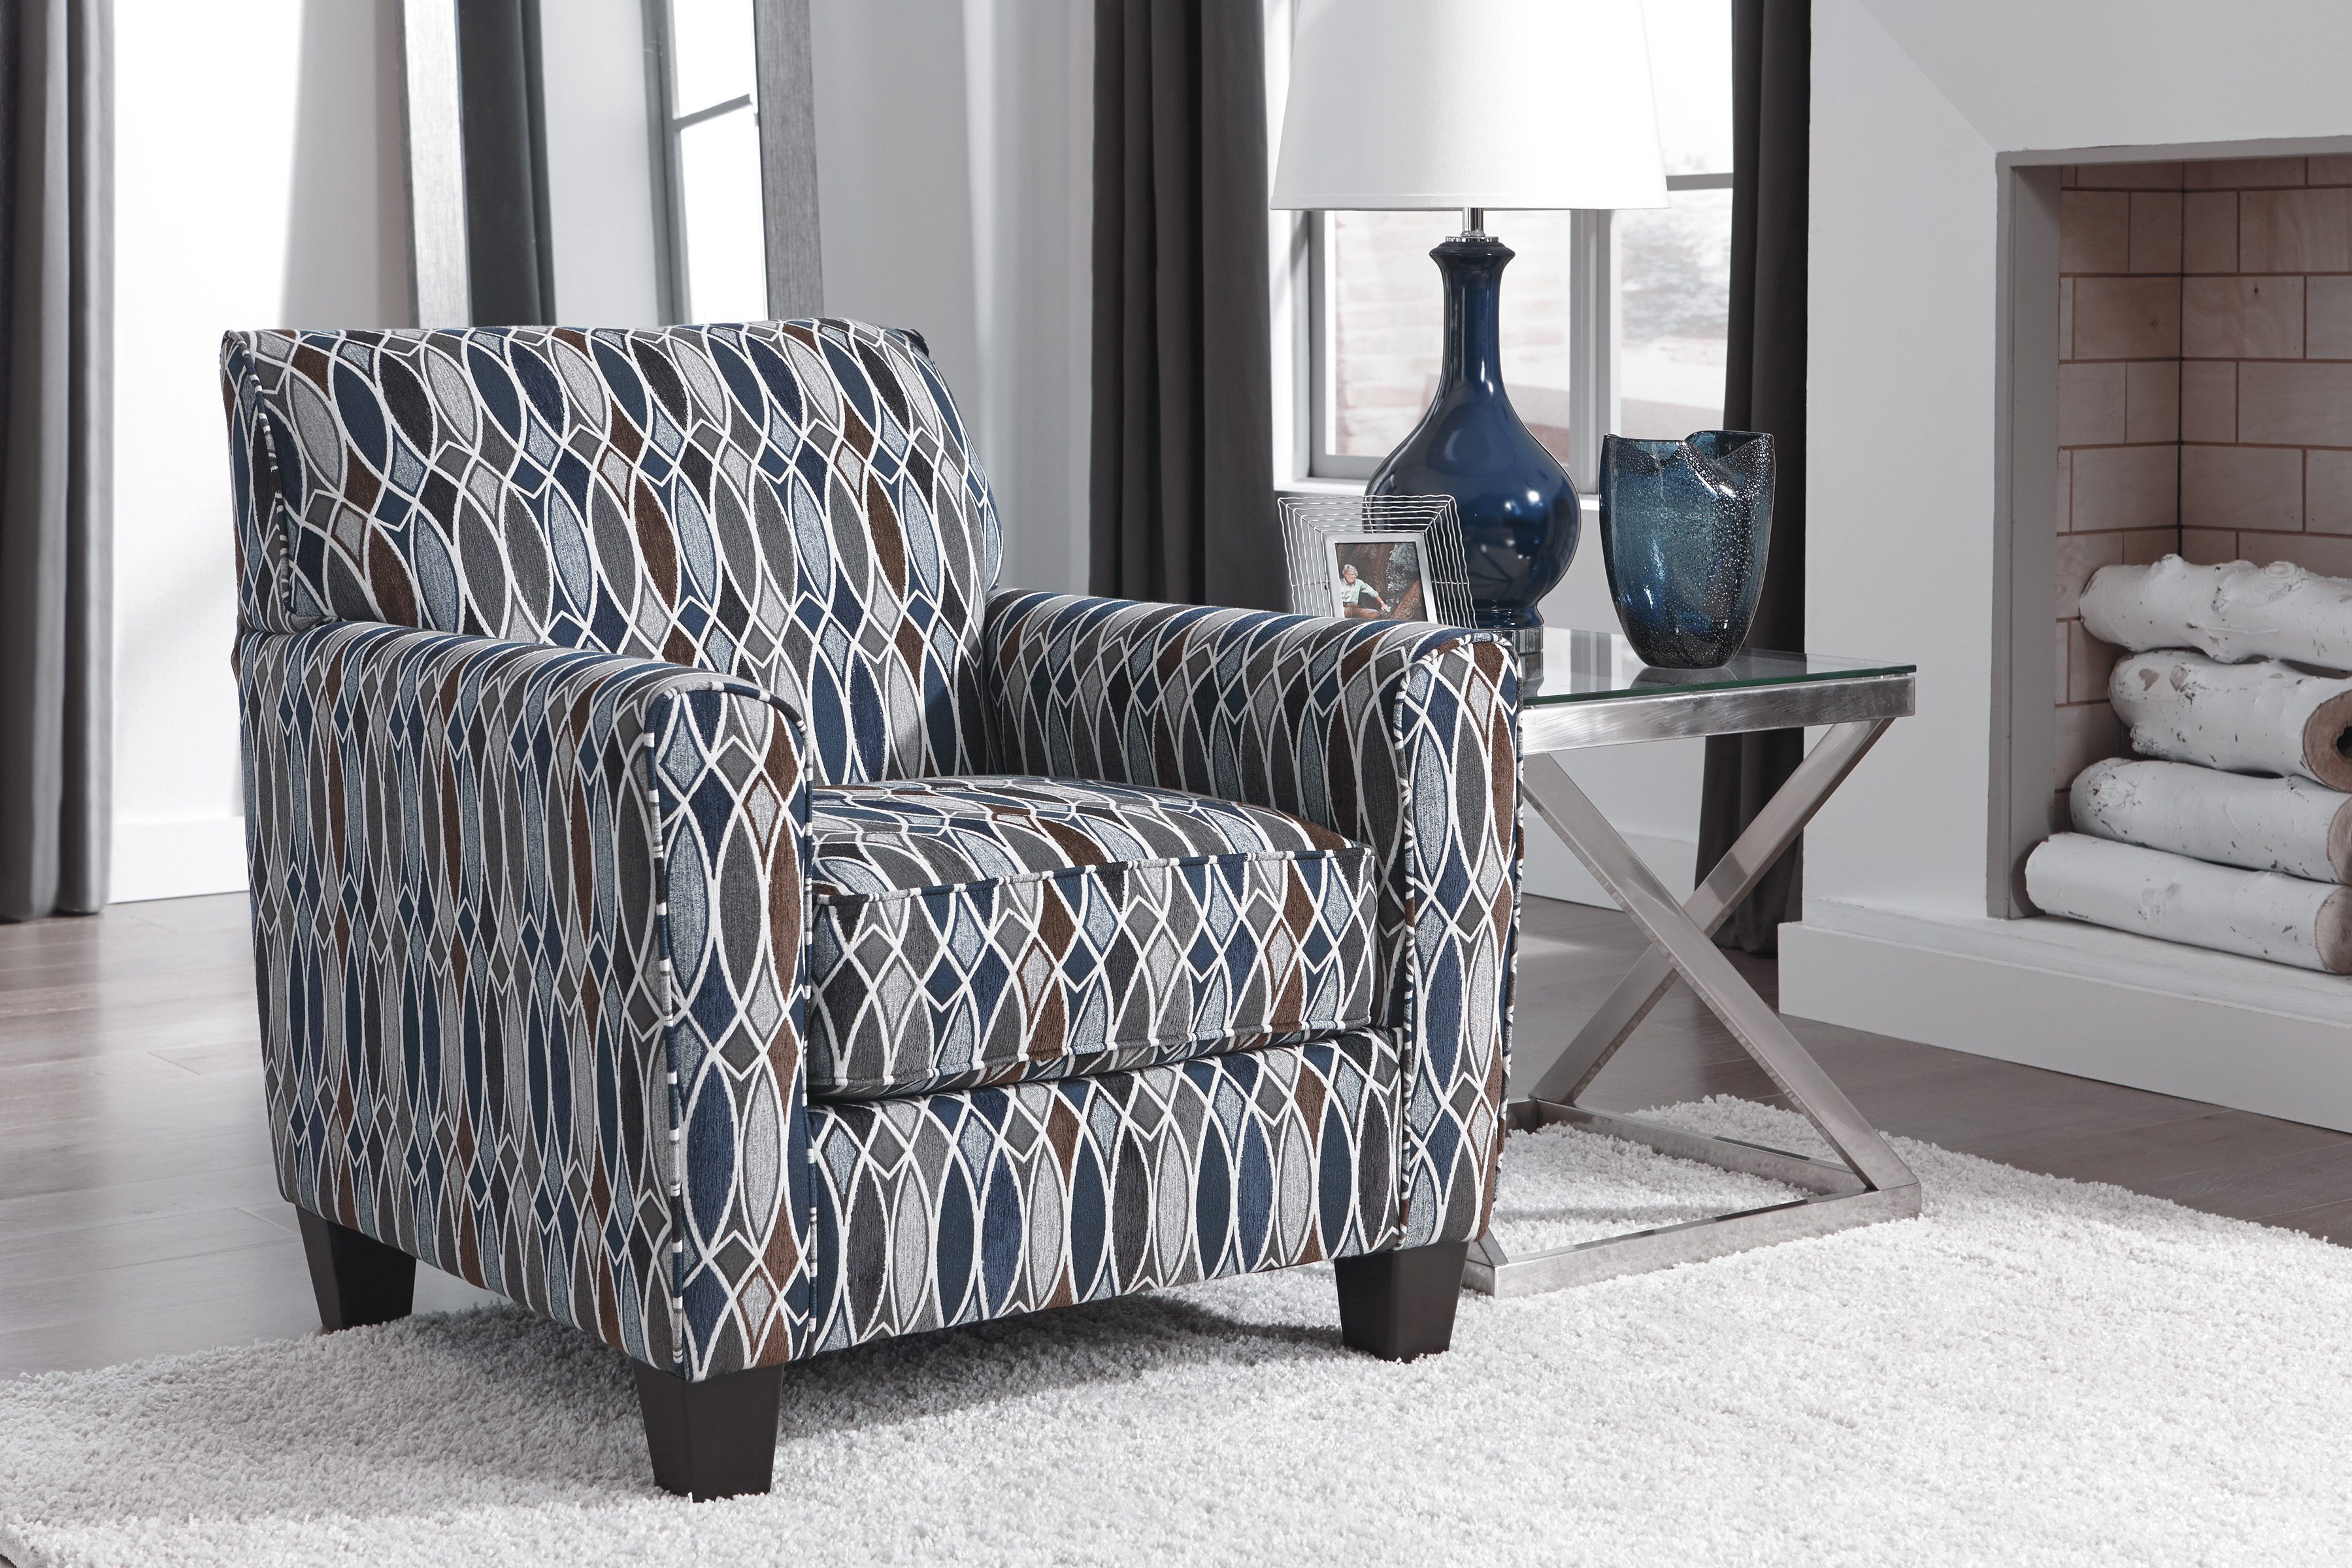 Rent A Center Accent Chairs.Majik Creeal Heights Navy Accent Chair Rent To Own Furniture In